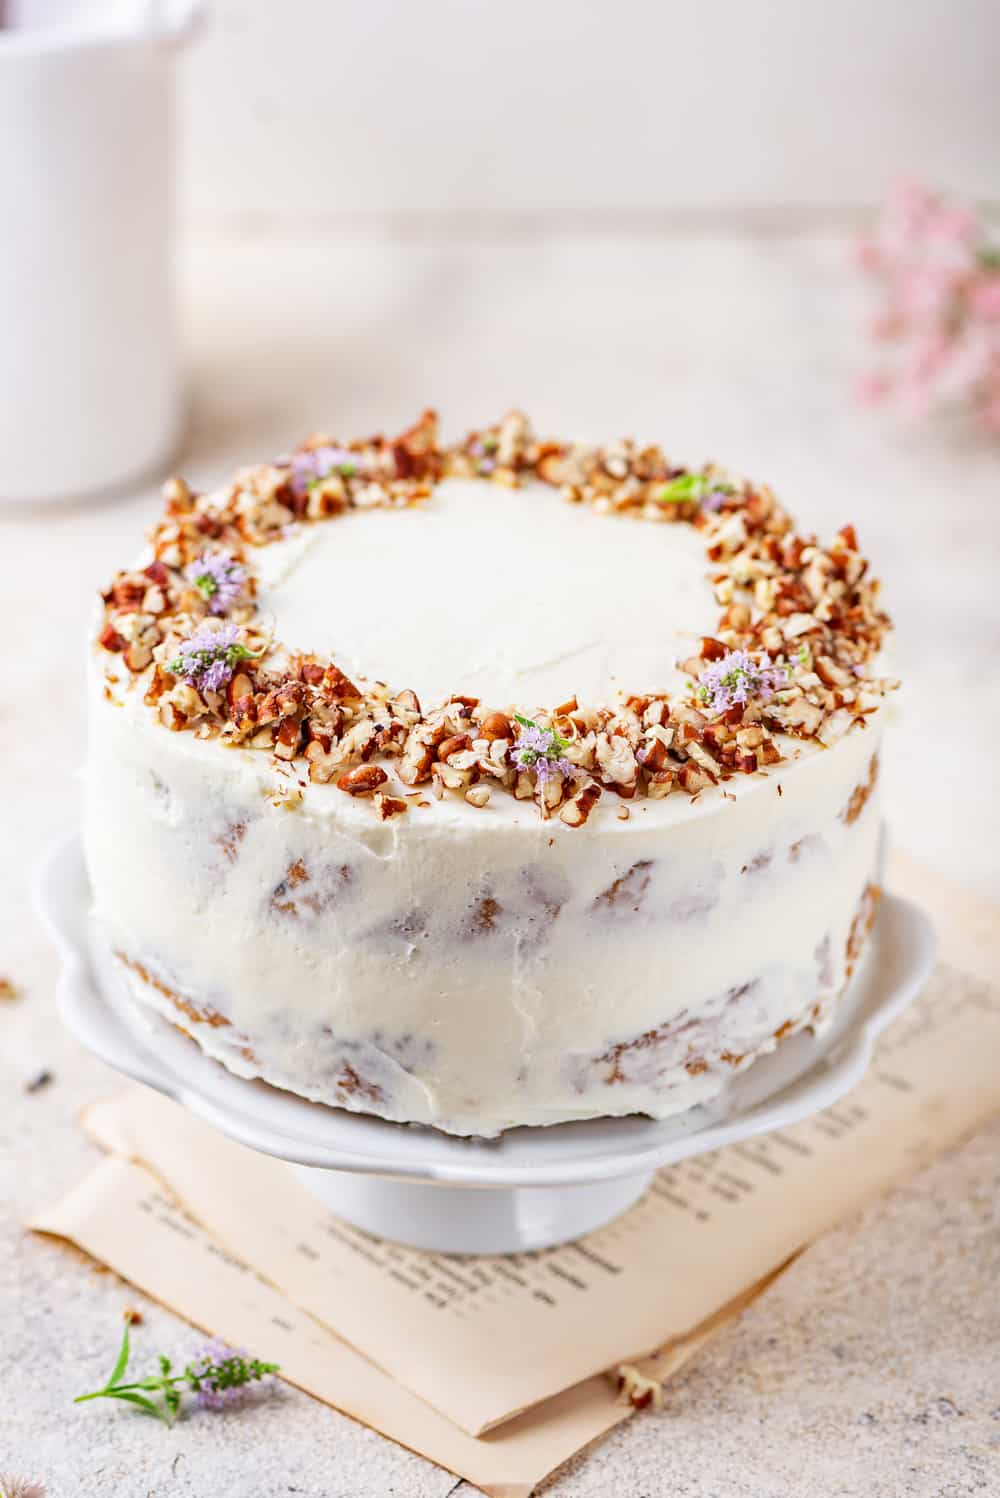 Carrot cake on a white cake tray